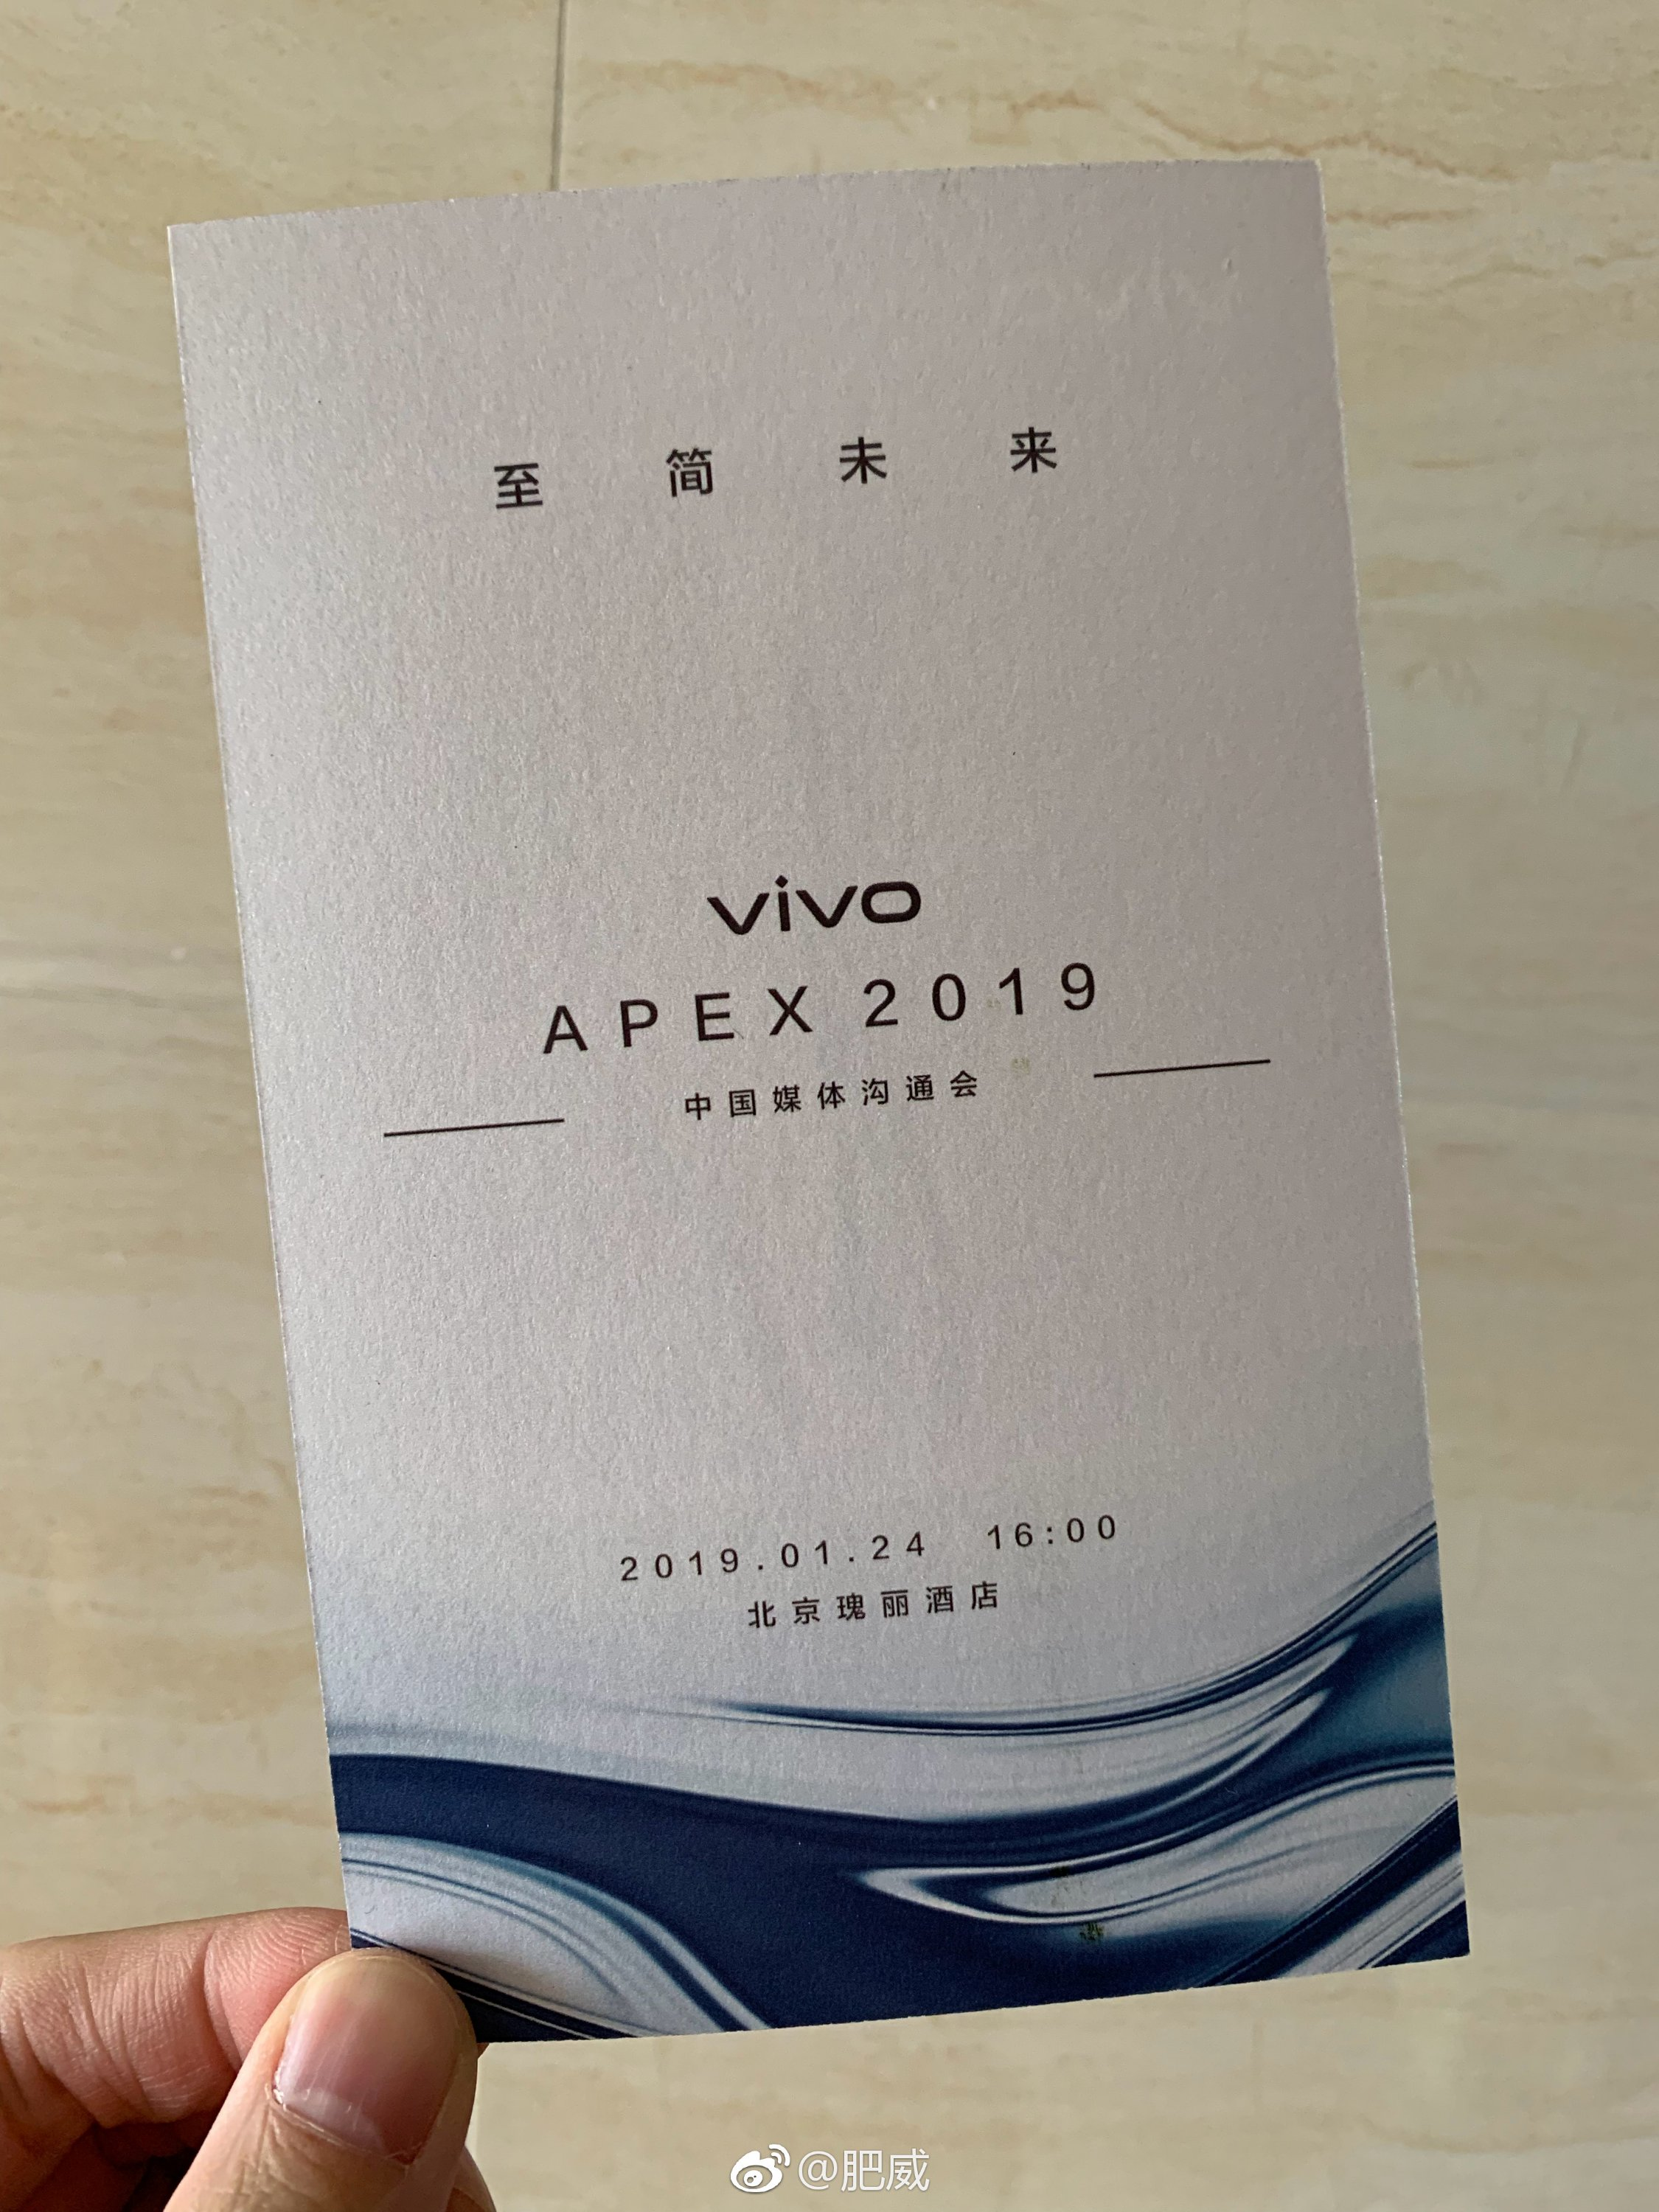 Vivo Apex 2019 Invitation Card